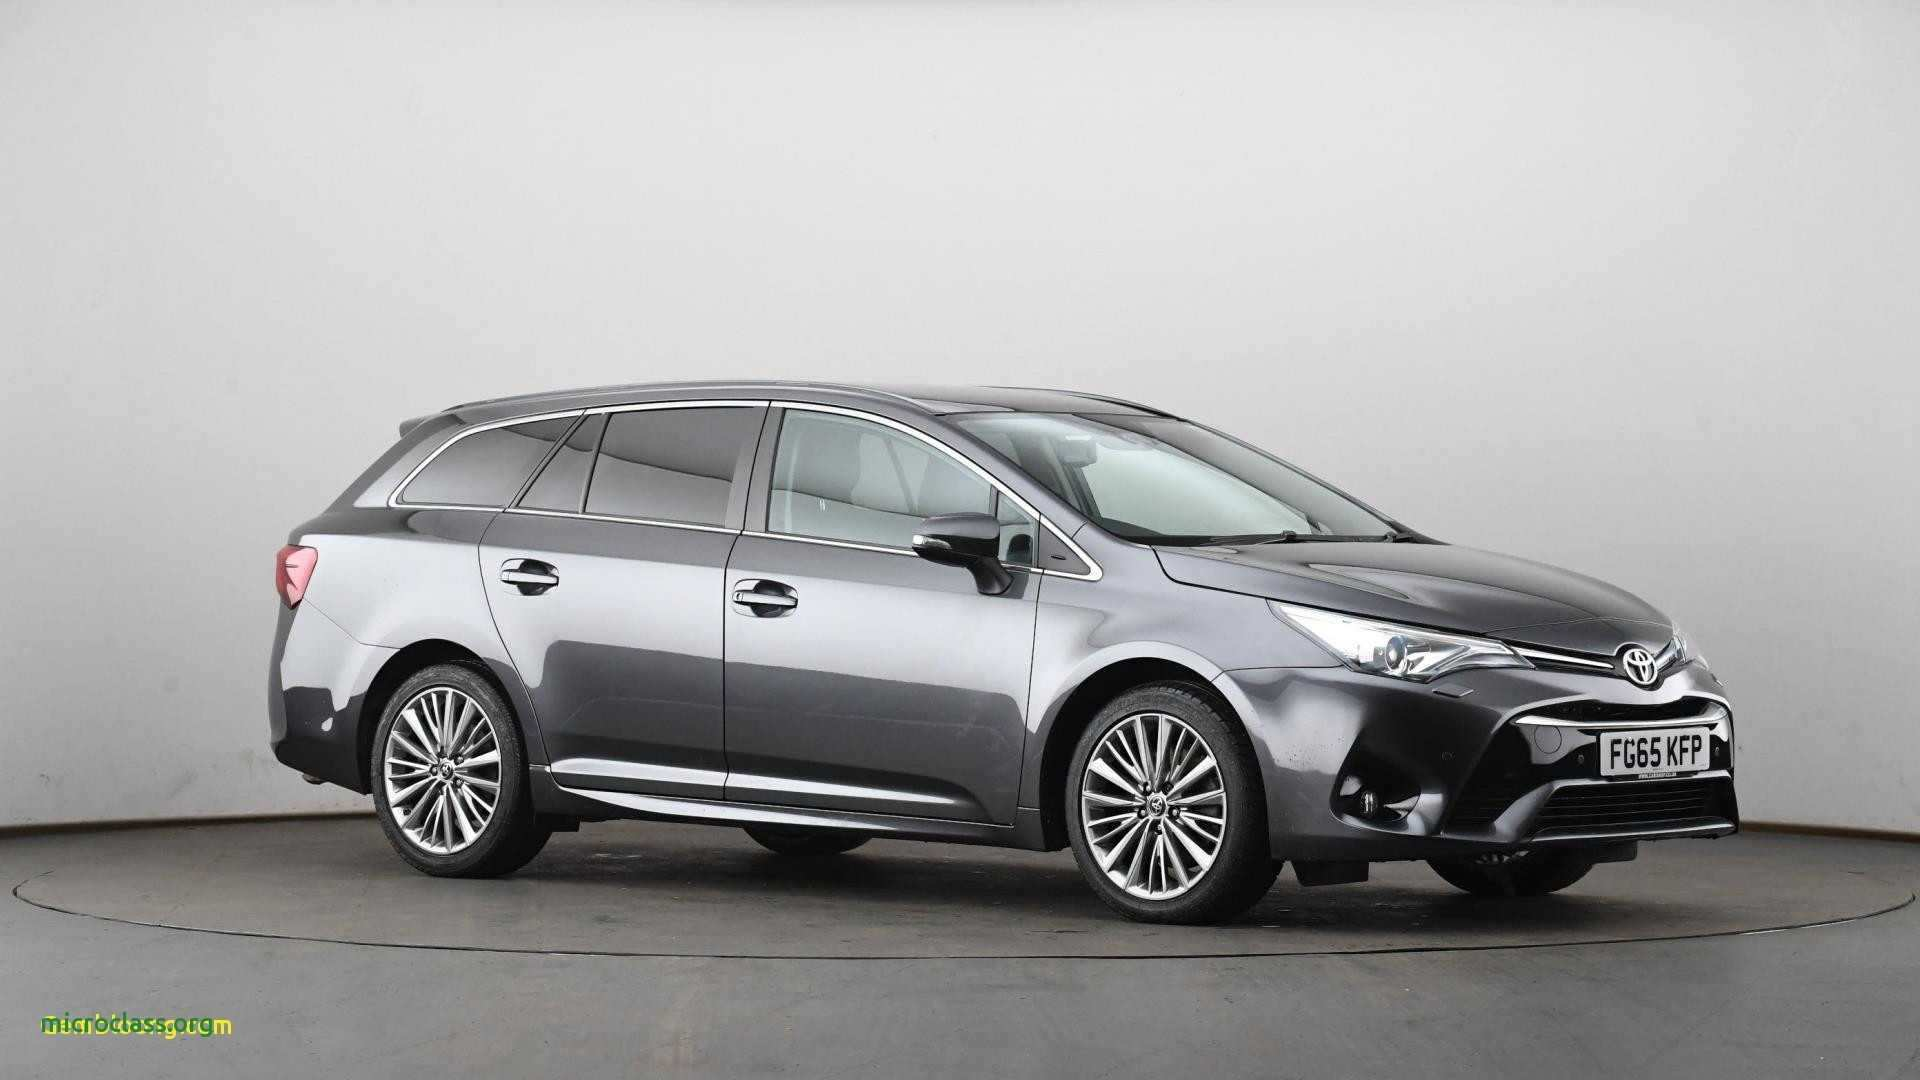 70 All New 2019 New Toyota Avensis Spy Shots Interior